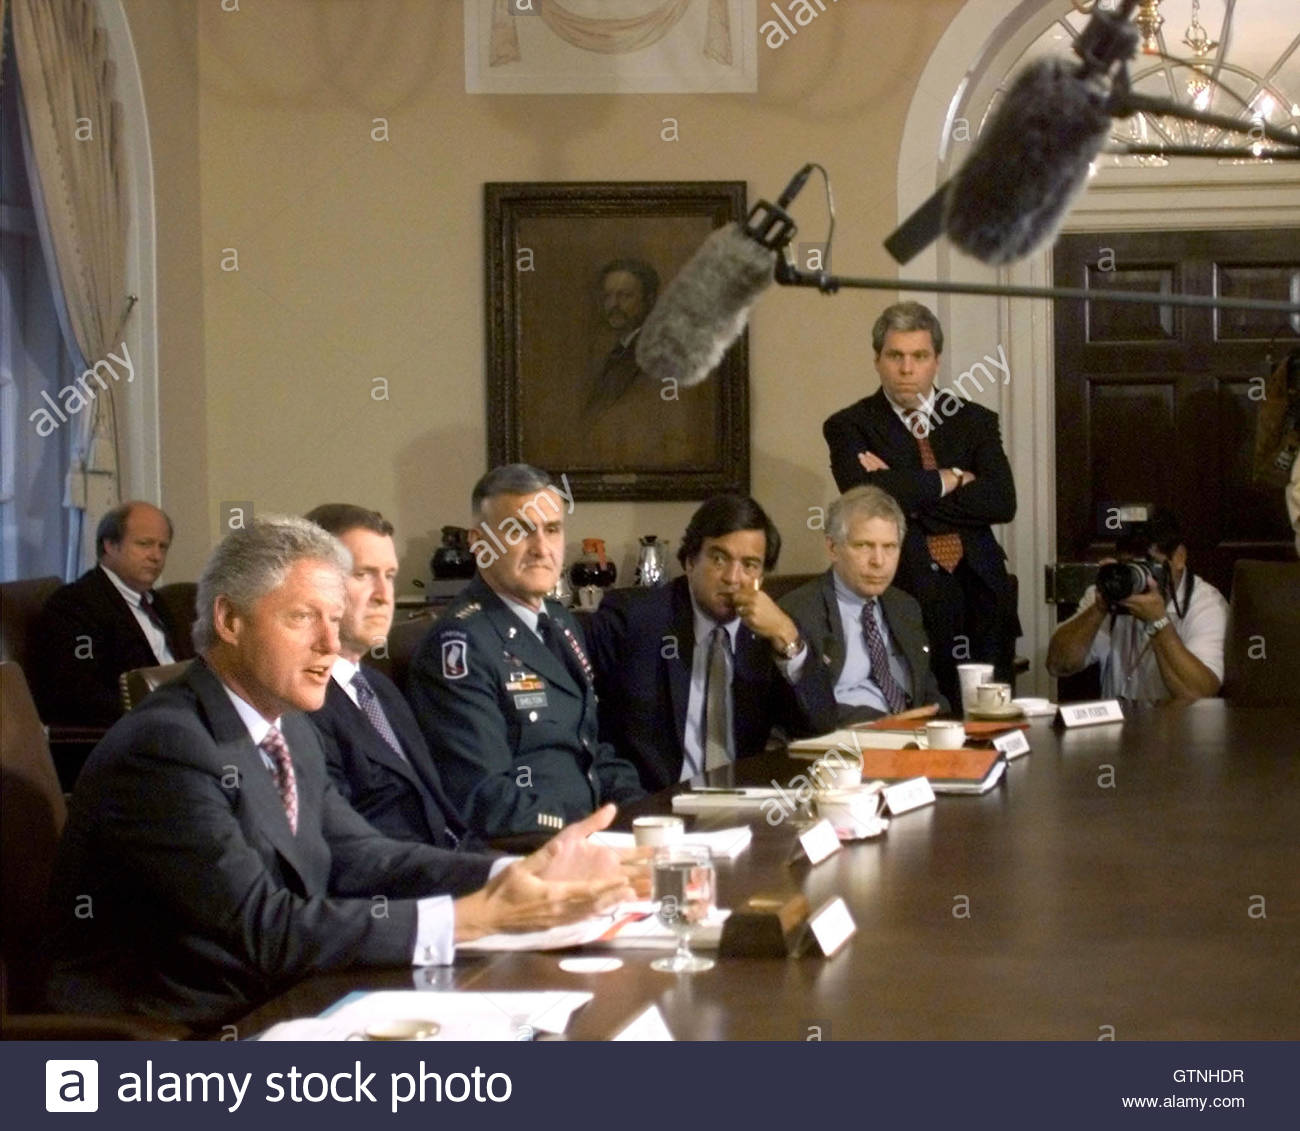 The Press Cabinet President Clinton Speaks With Members Of The Press During A